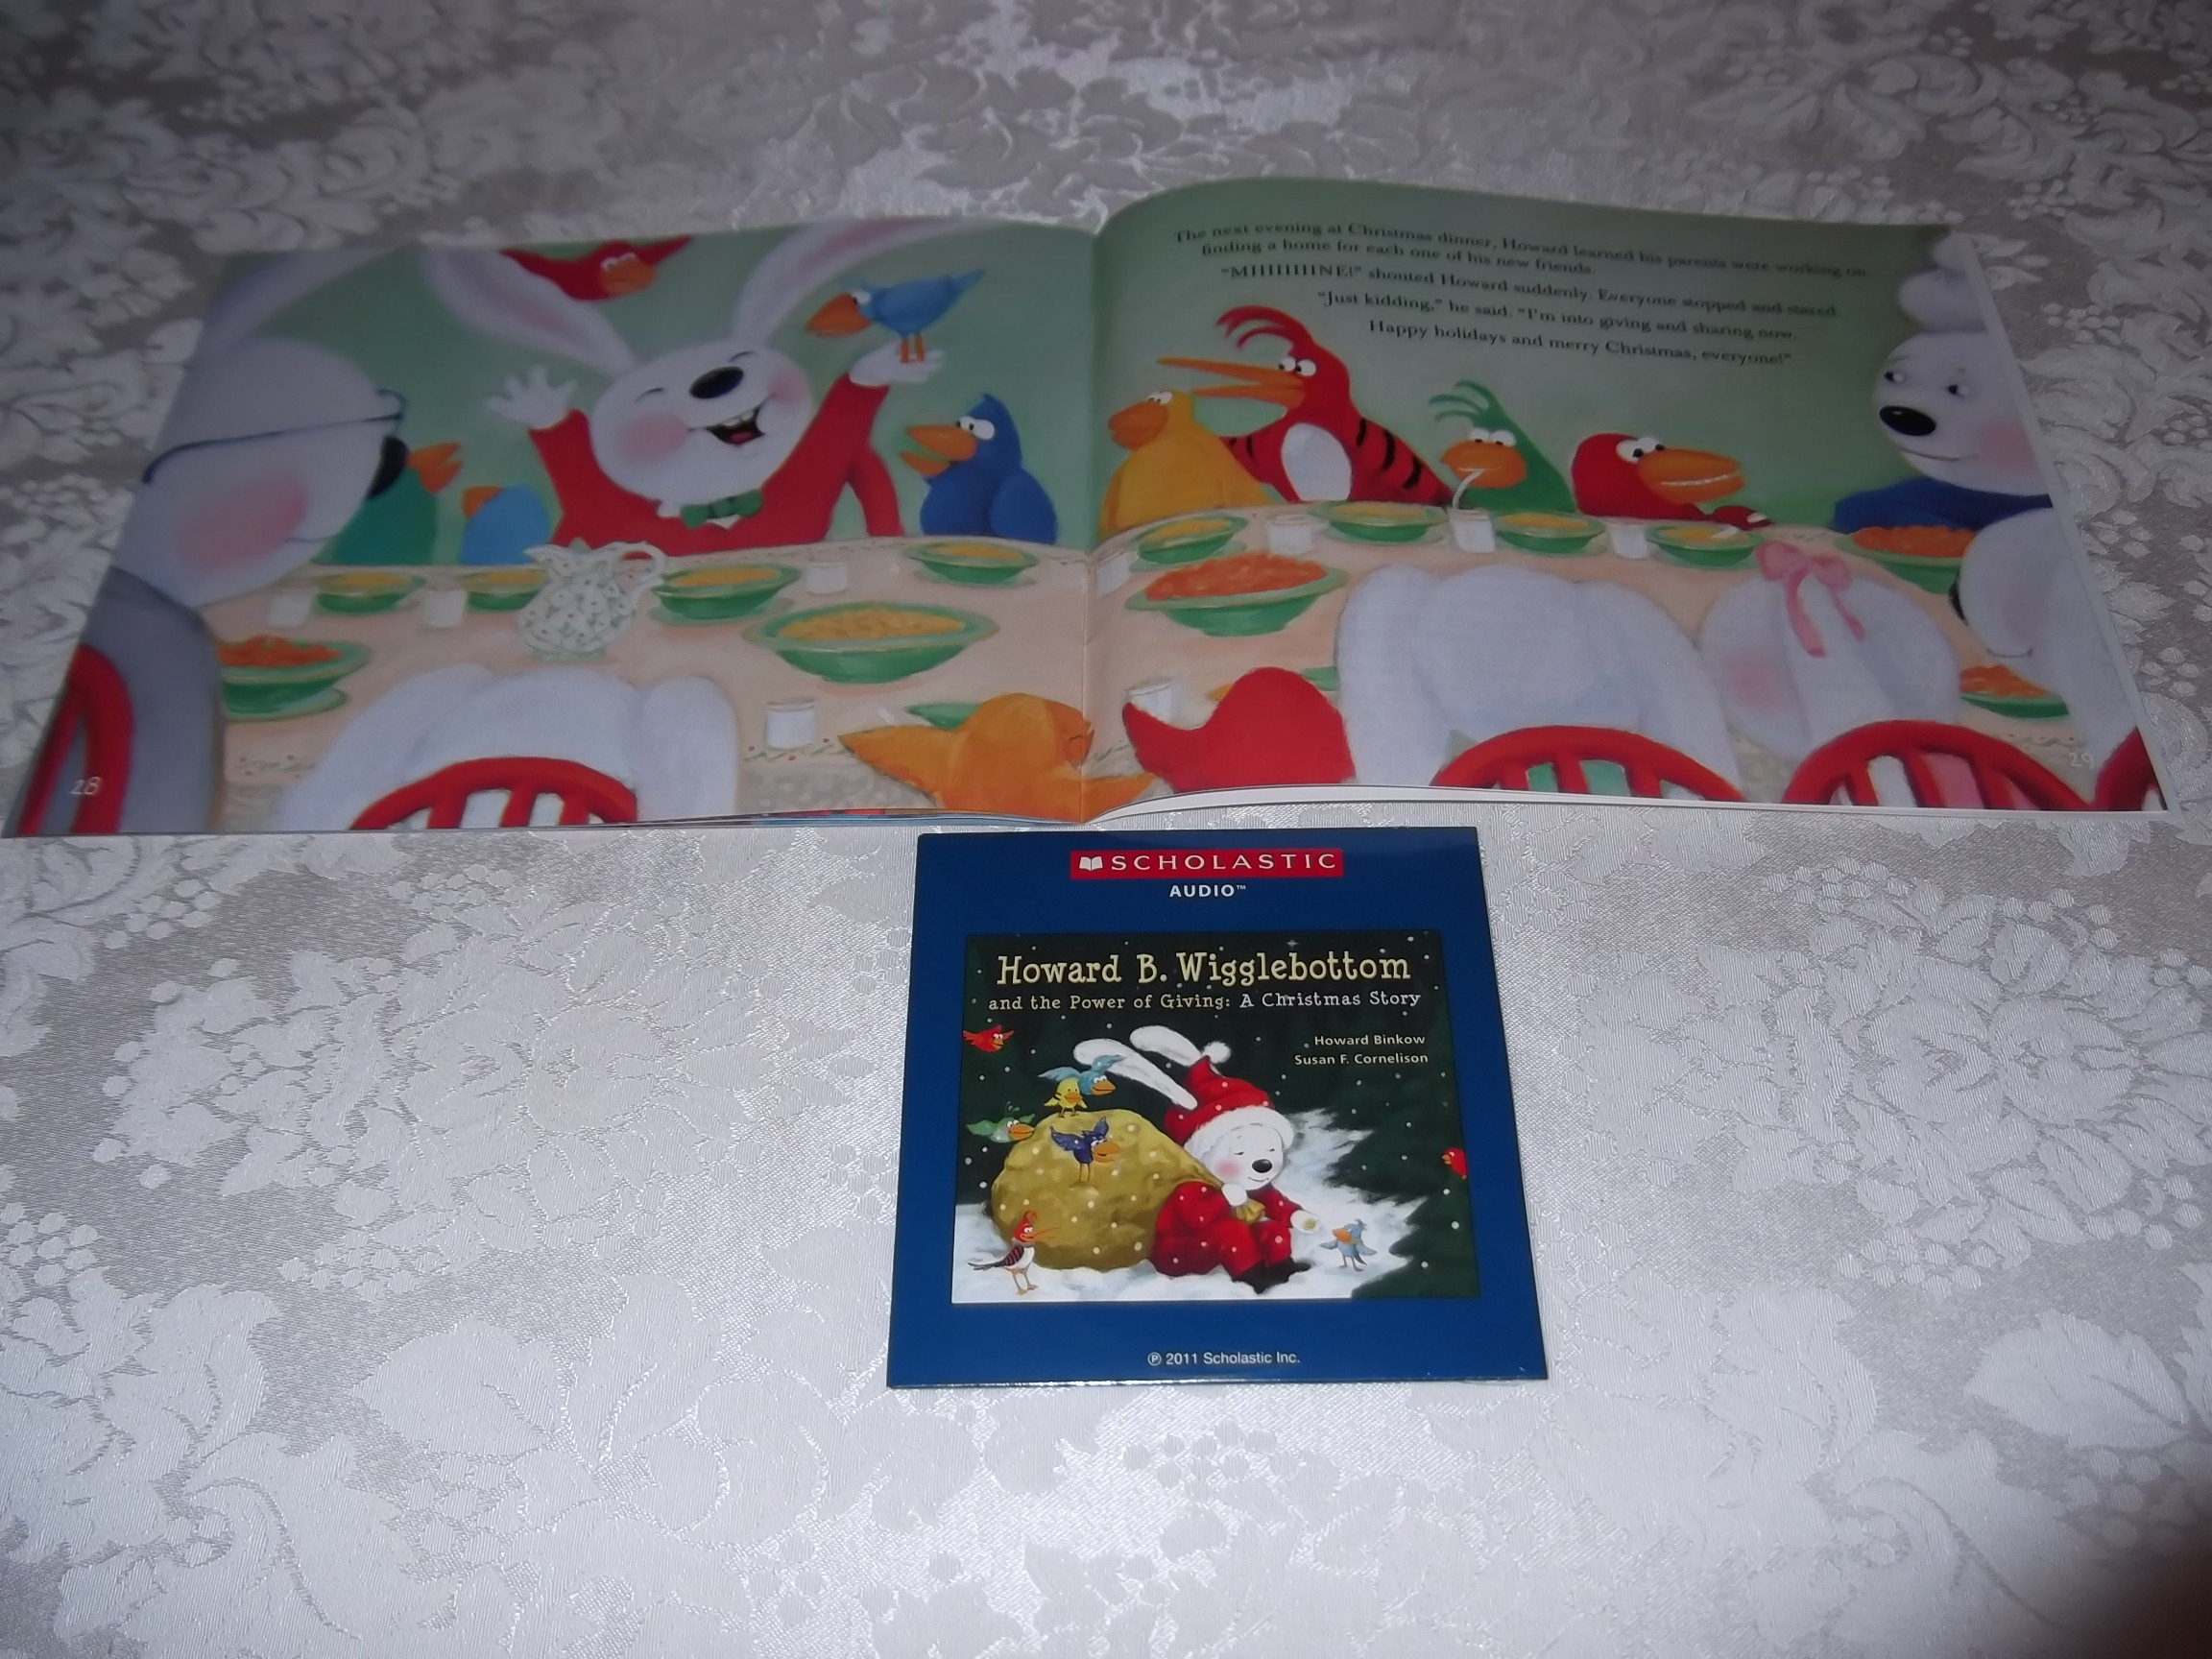 Image 2 of Howard B. Wigglebottom and the Power of Giving: A Christmas Story Audio CD & SC